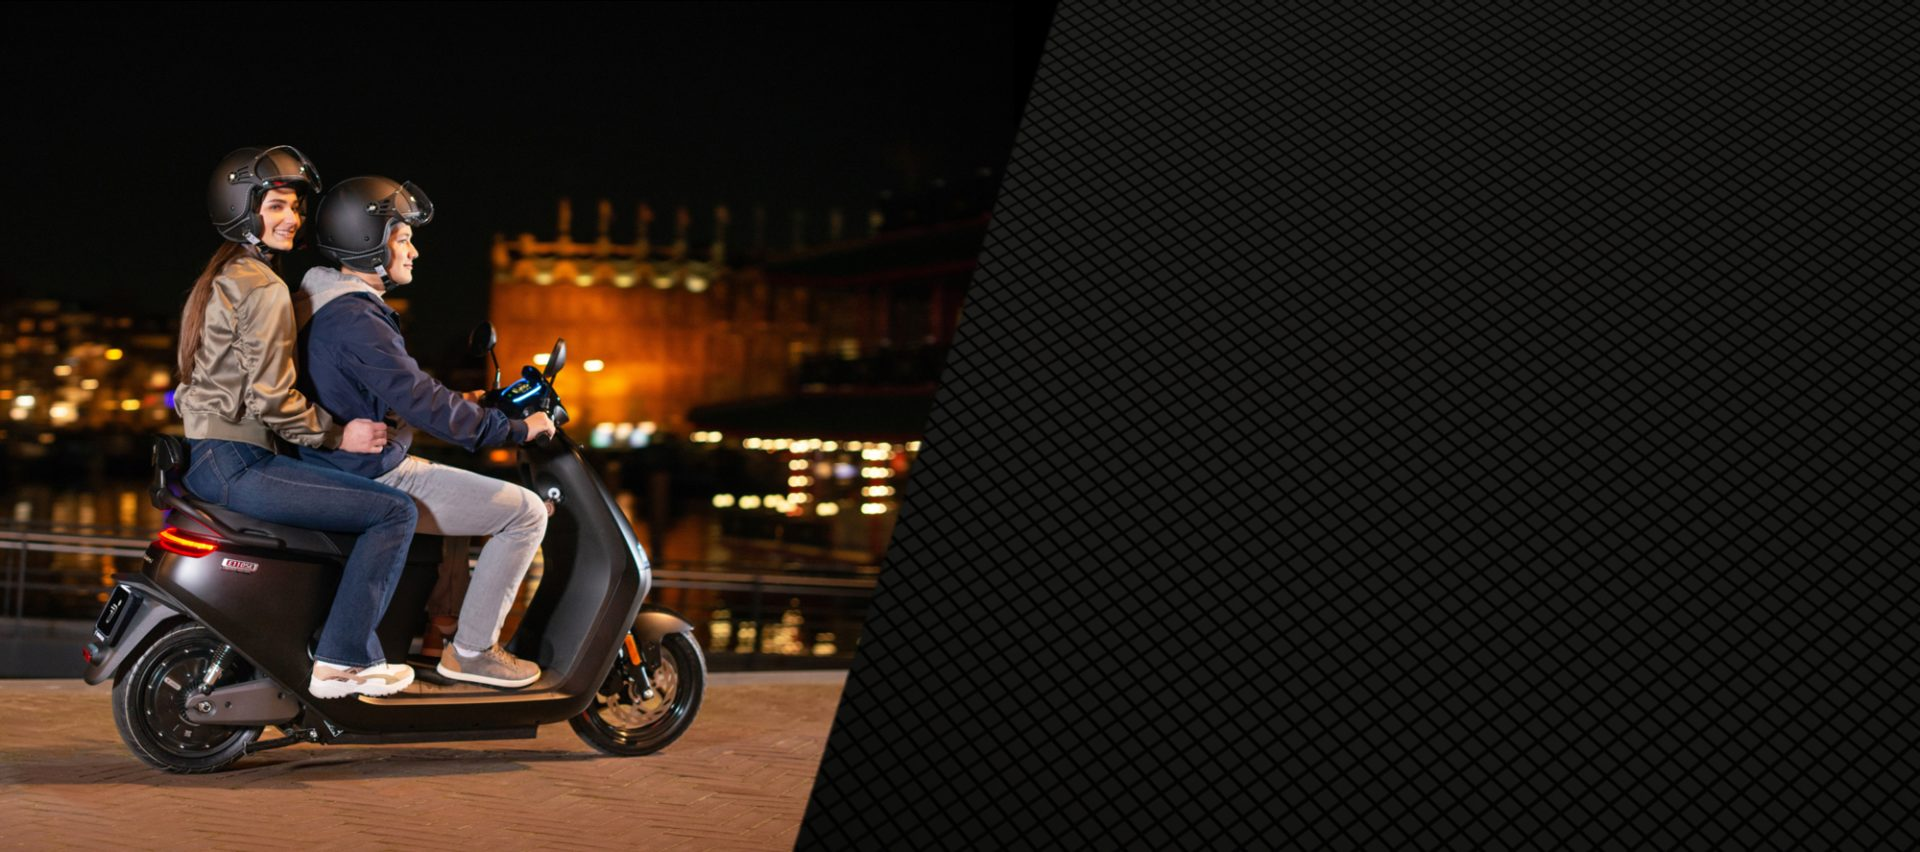 Customise and choose the riding mode that fits your need